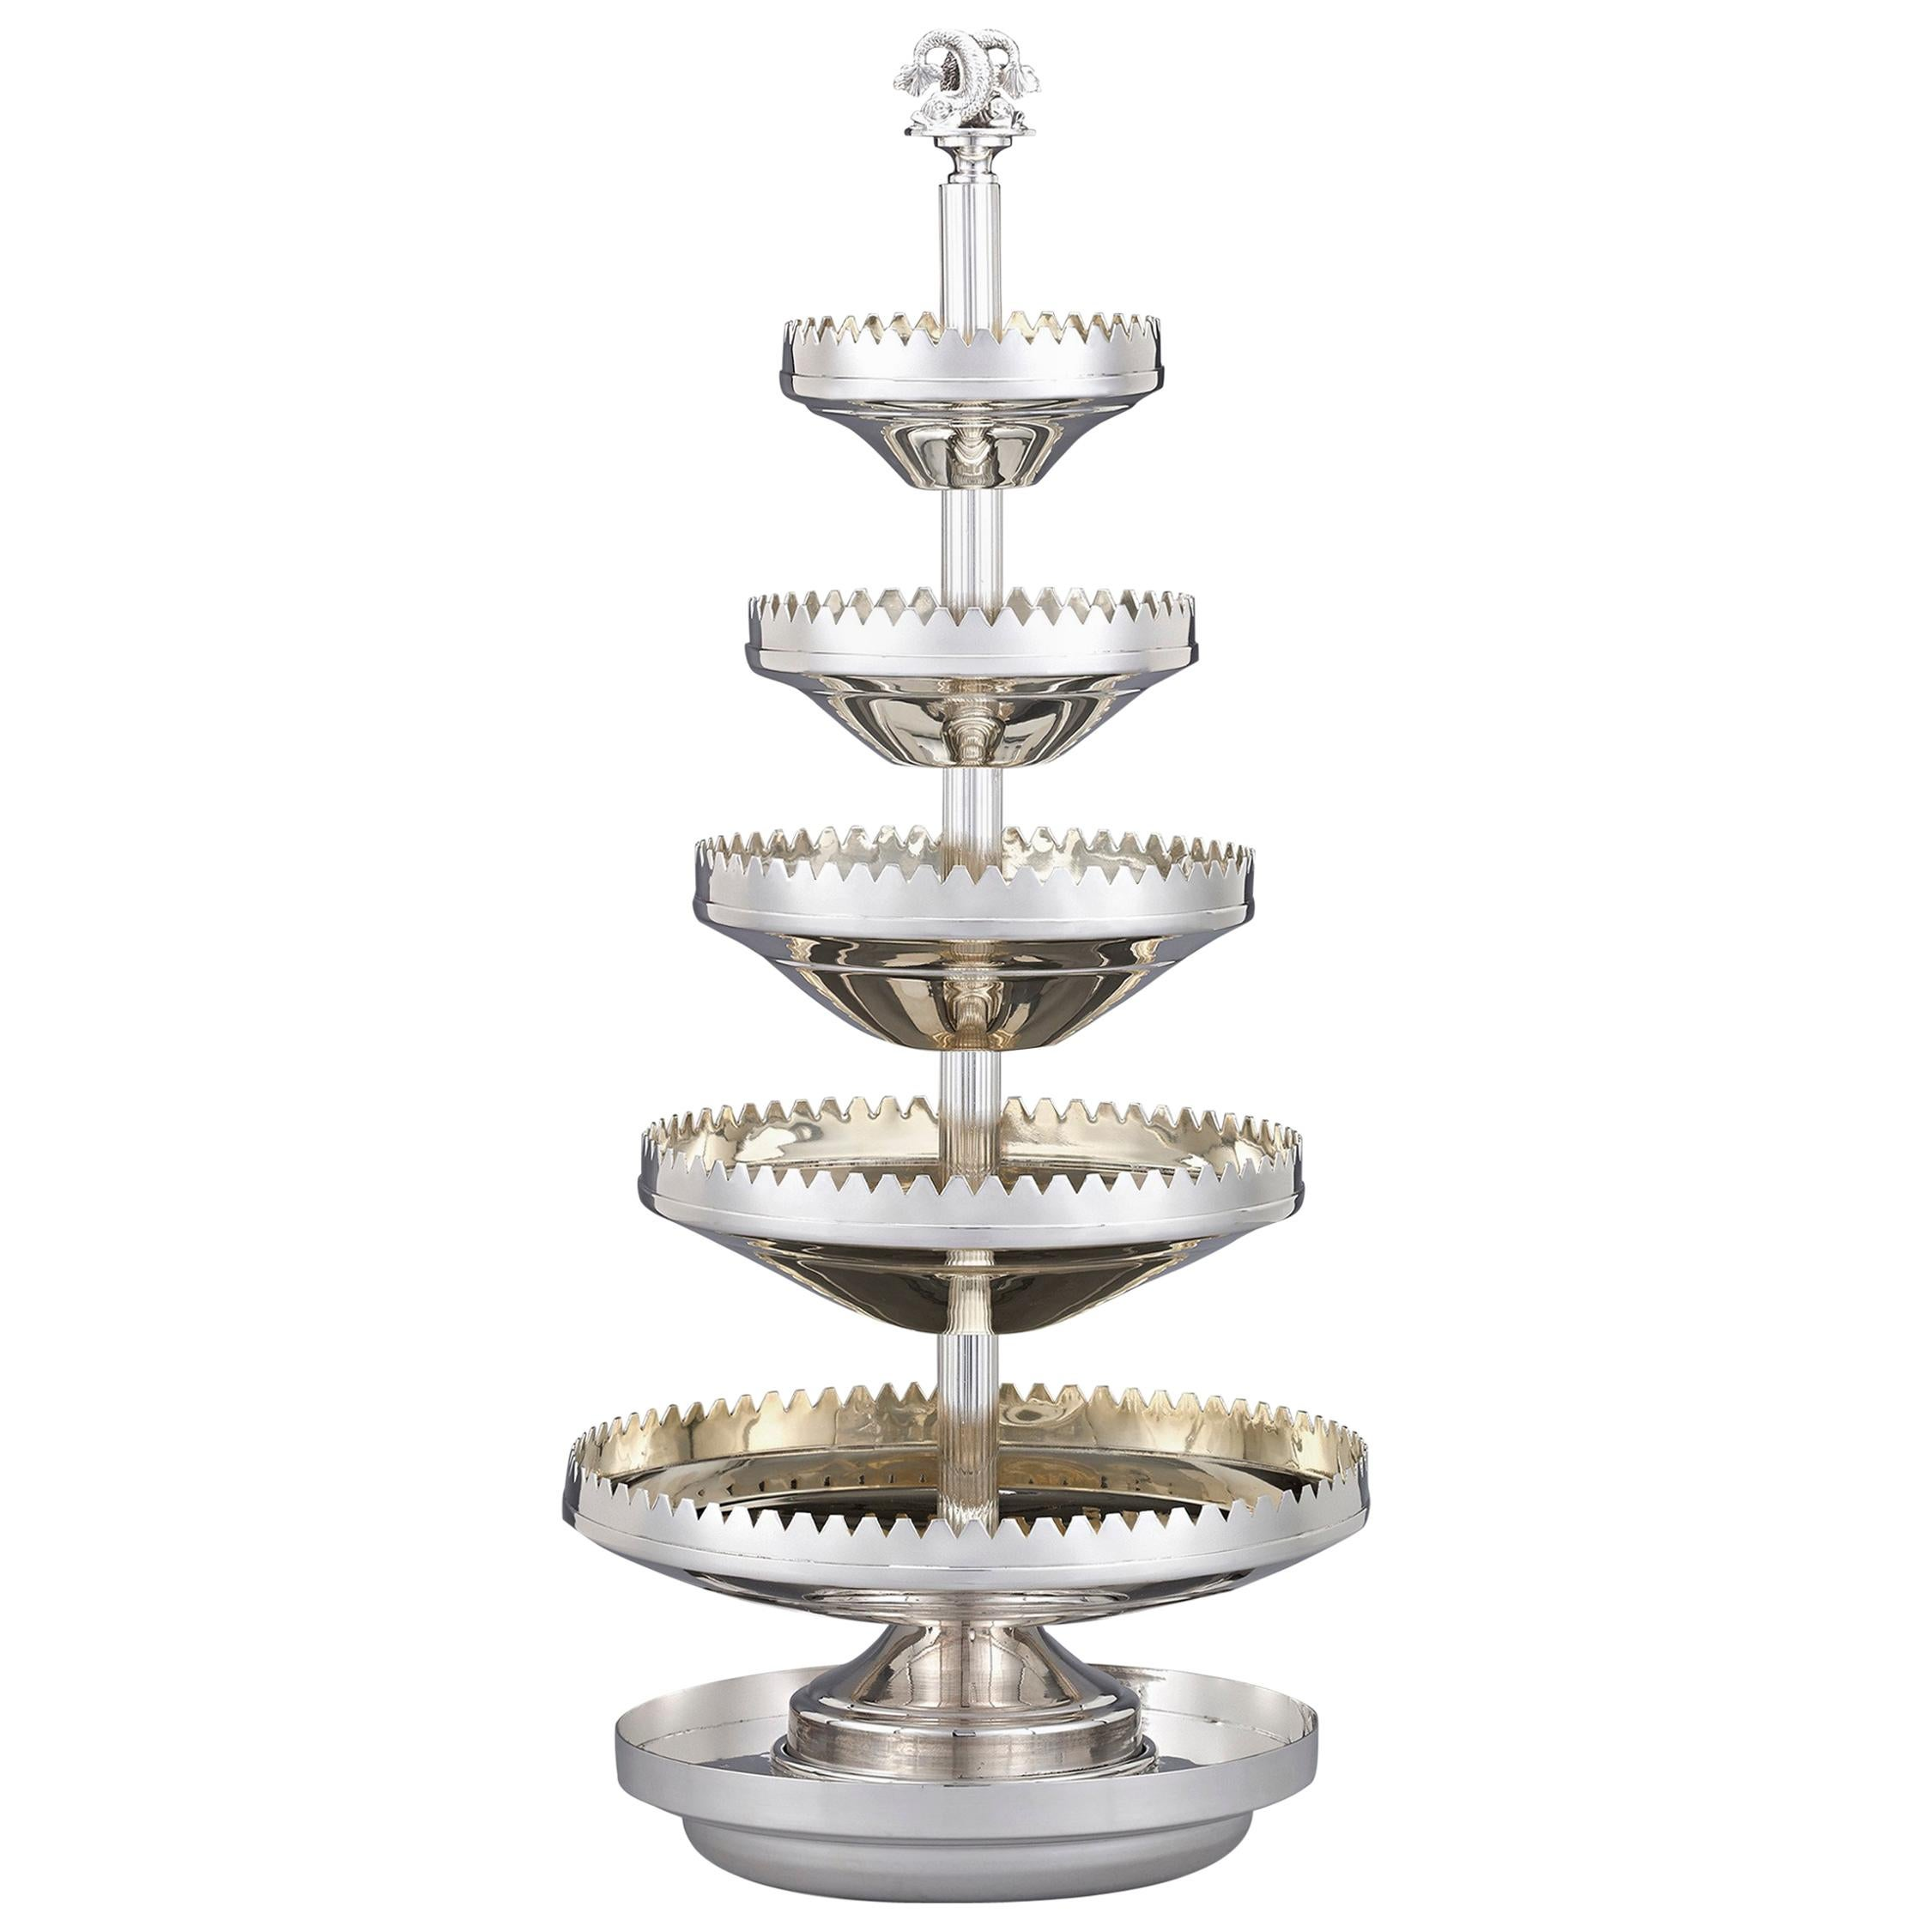 Victorian Silver Oyster Server by Mappin & Webb